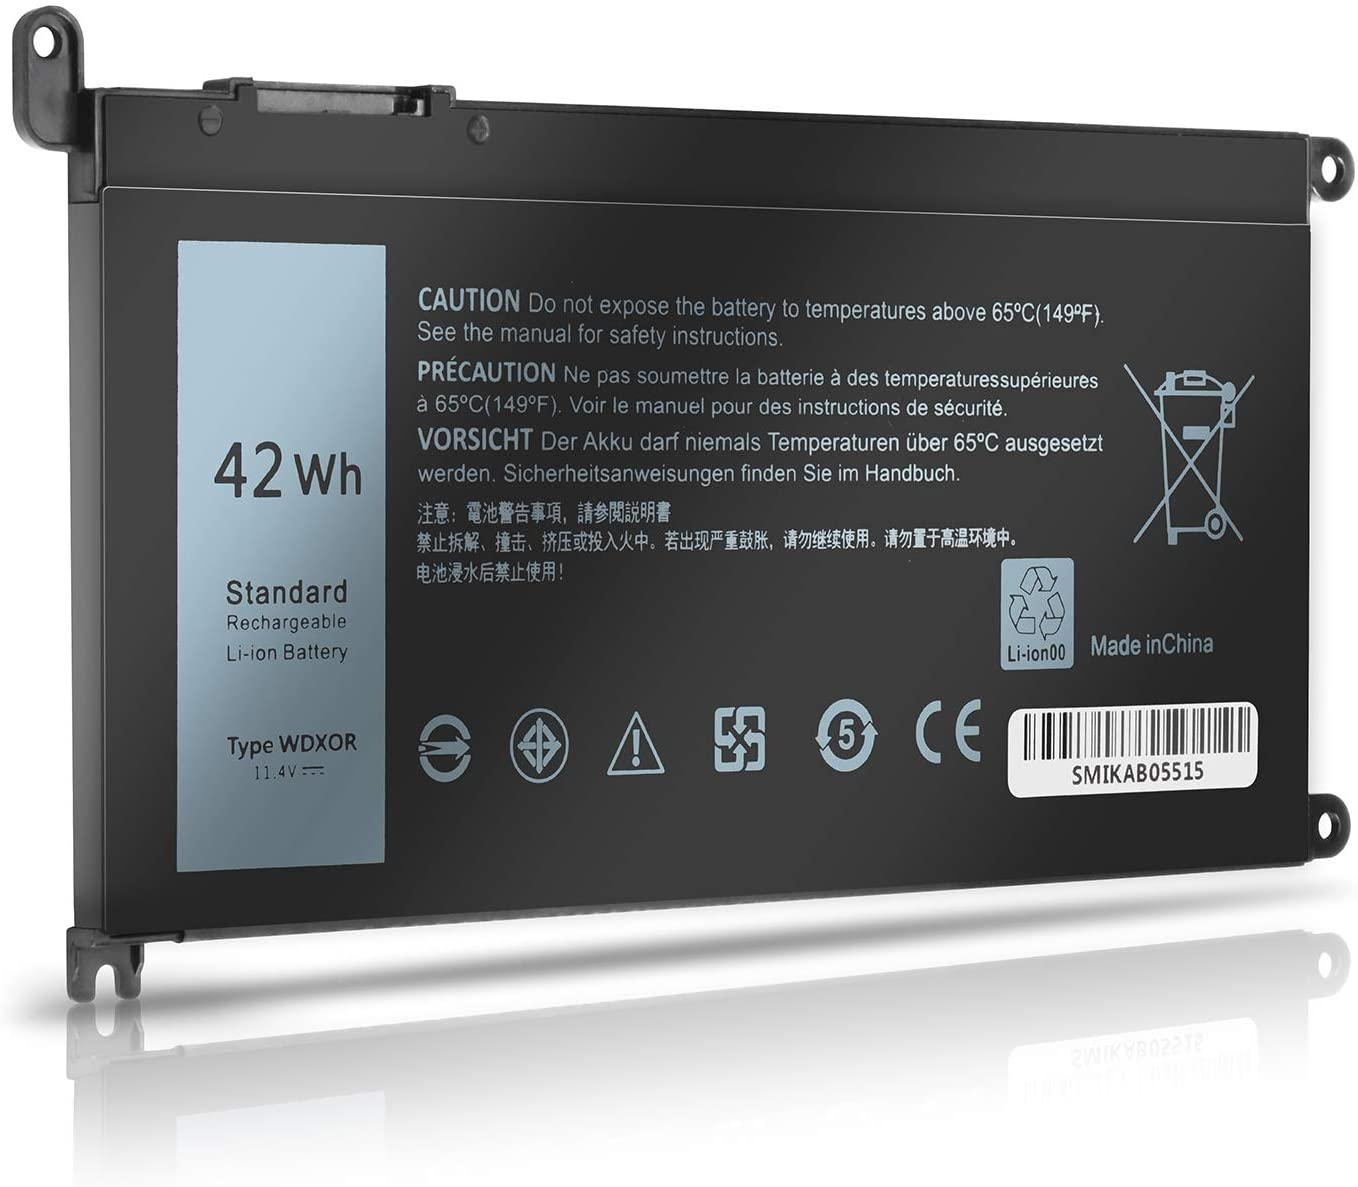 WDXOR 42Wh Laptop Battery Replace for Dell Inspiron 17 5765 5767 5770 15 5565 5567 5568 5578 7560 7570 7579 7569 13 5368 5378 7368 7378 Series Notebook FC92N 3CRH3 T2JX4